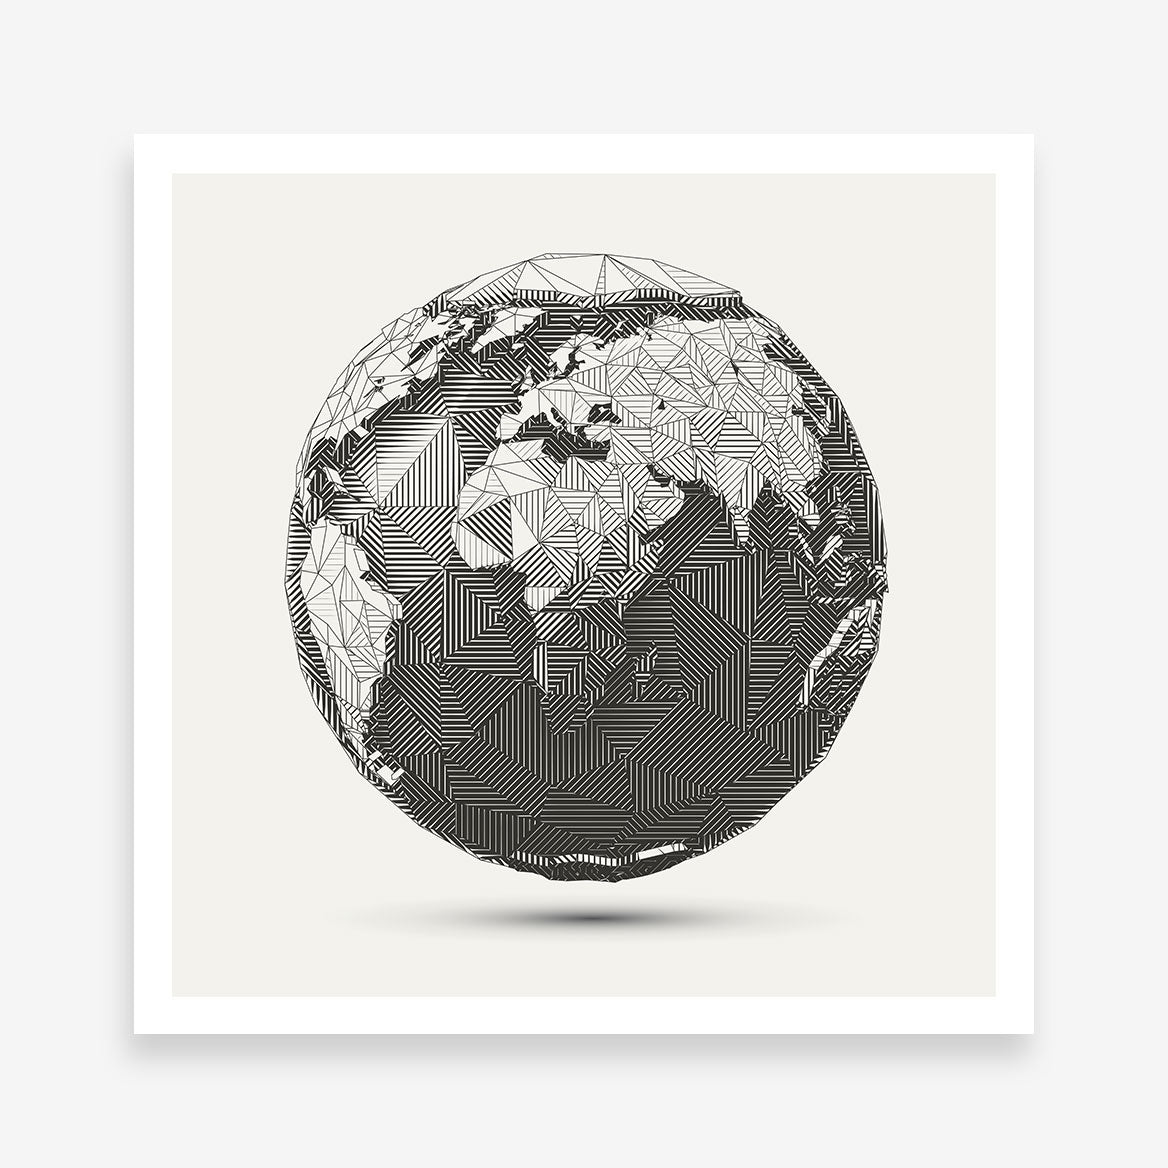 Geometric poster print with 3D Earth Globe, on light grey background